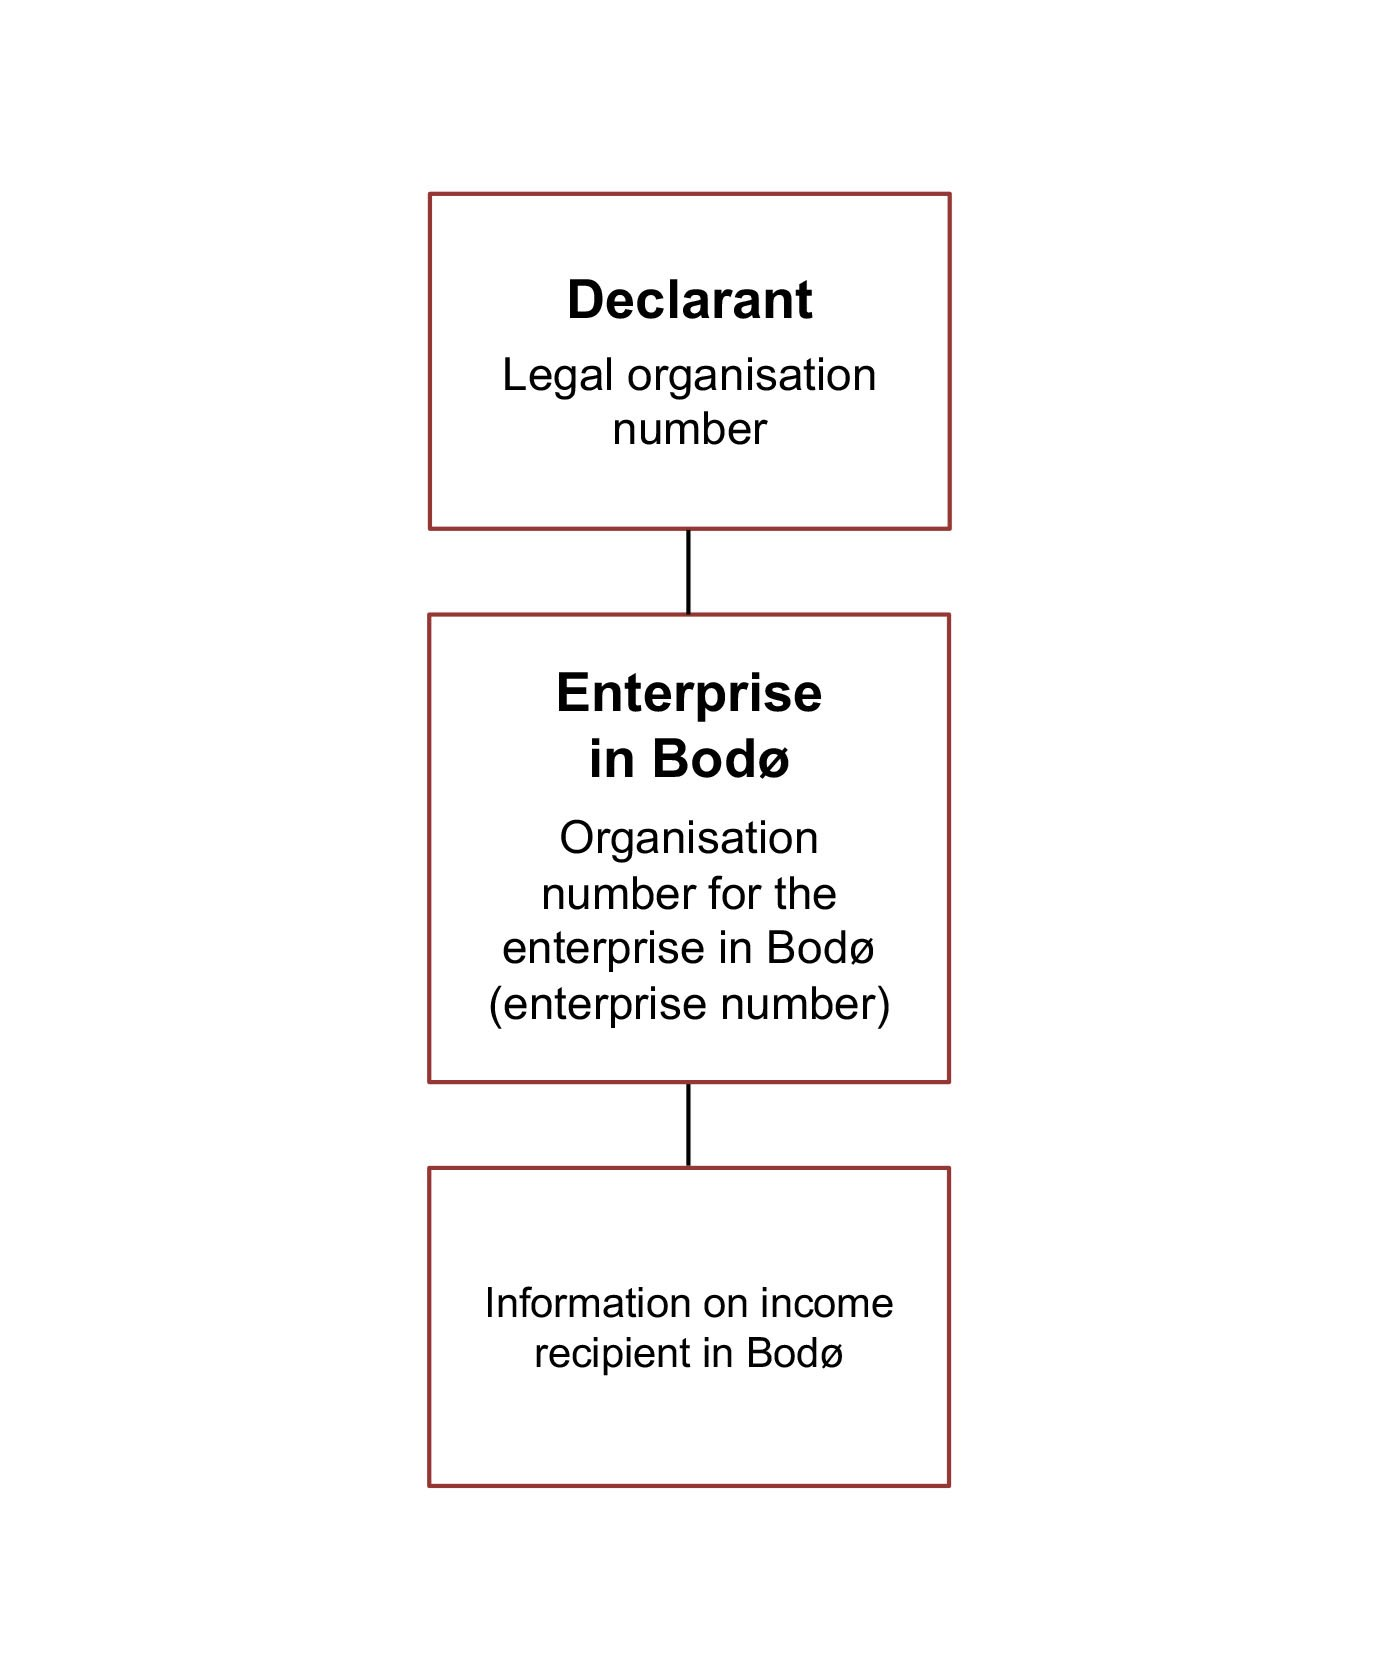 Diagram. Specify the legal organisation number of the enterprise that is the declarant. Specify the organisation number of the enterprise in Bodø. Information on the income recipient is linked to the enterprise in Bodø. The text in the article explains this in more detail.